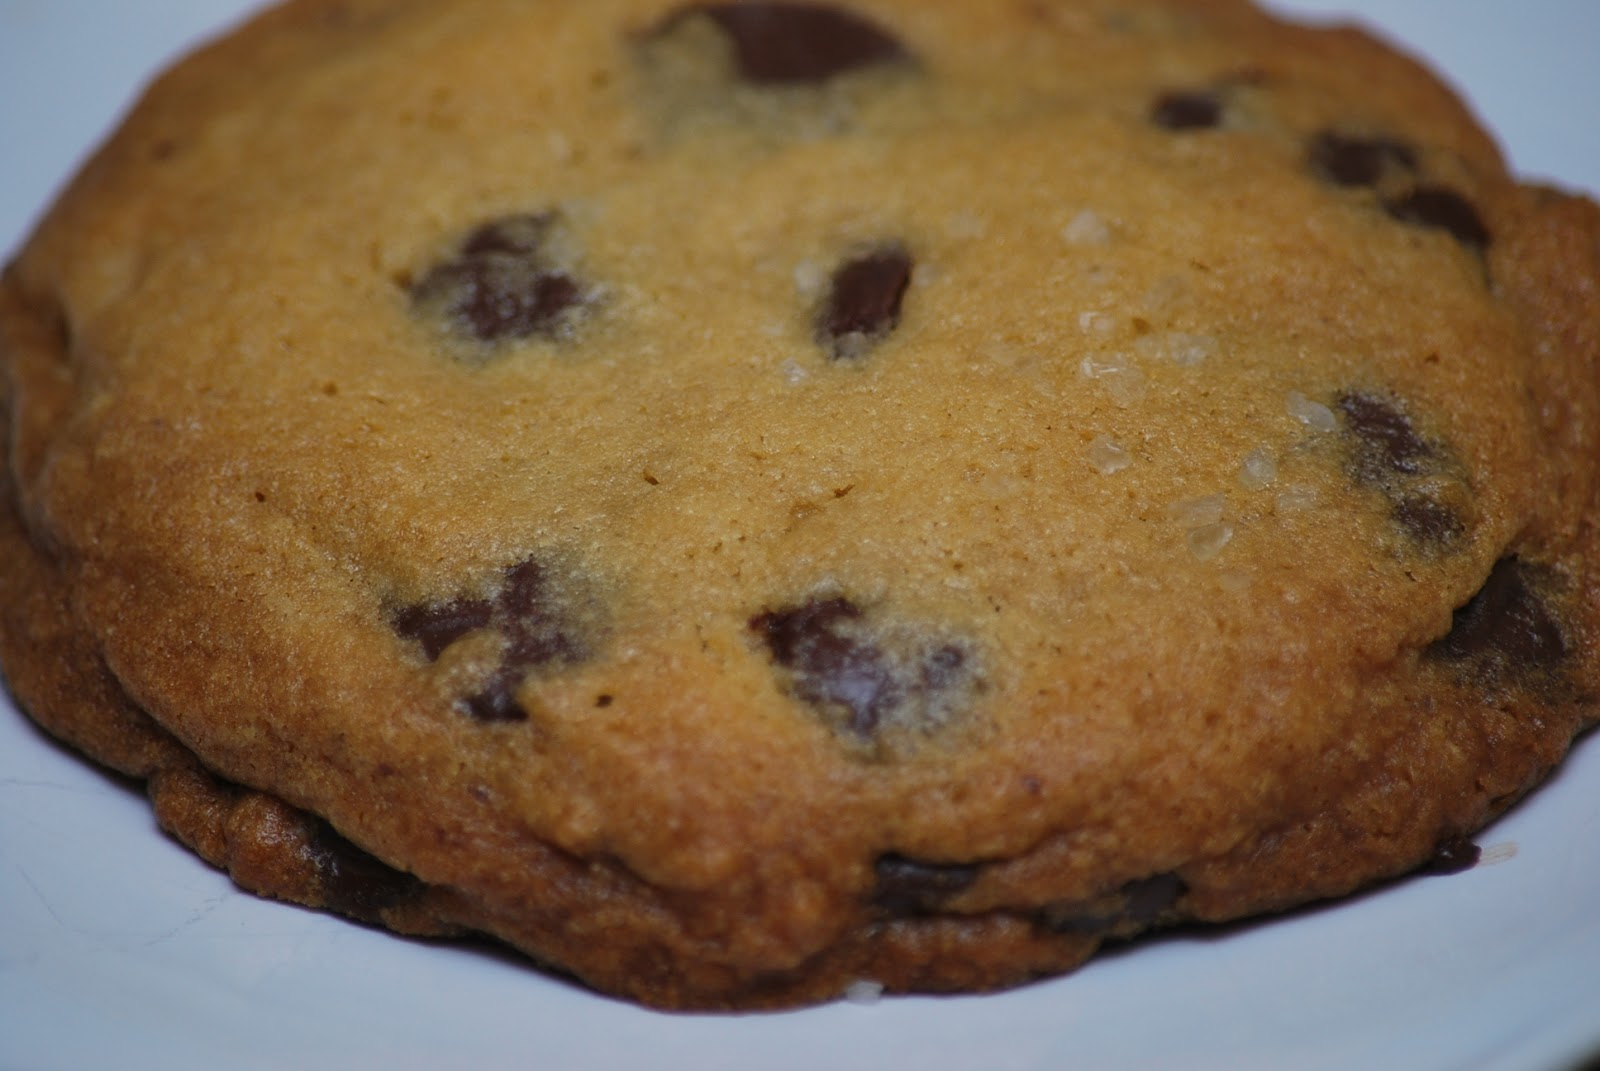 My story in recipes: New York Times Chocolate Chip Cookies